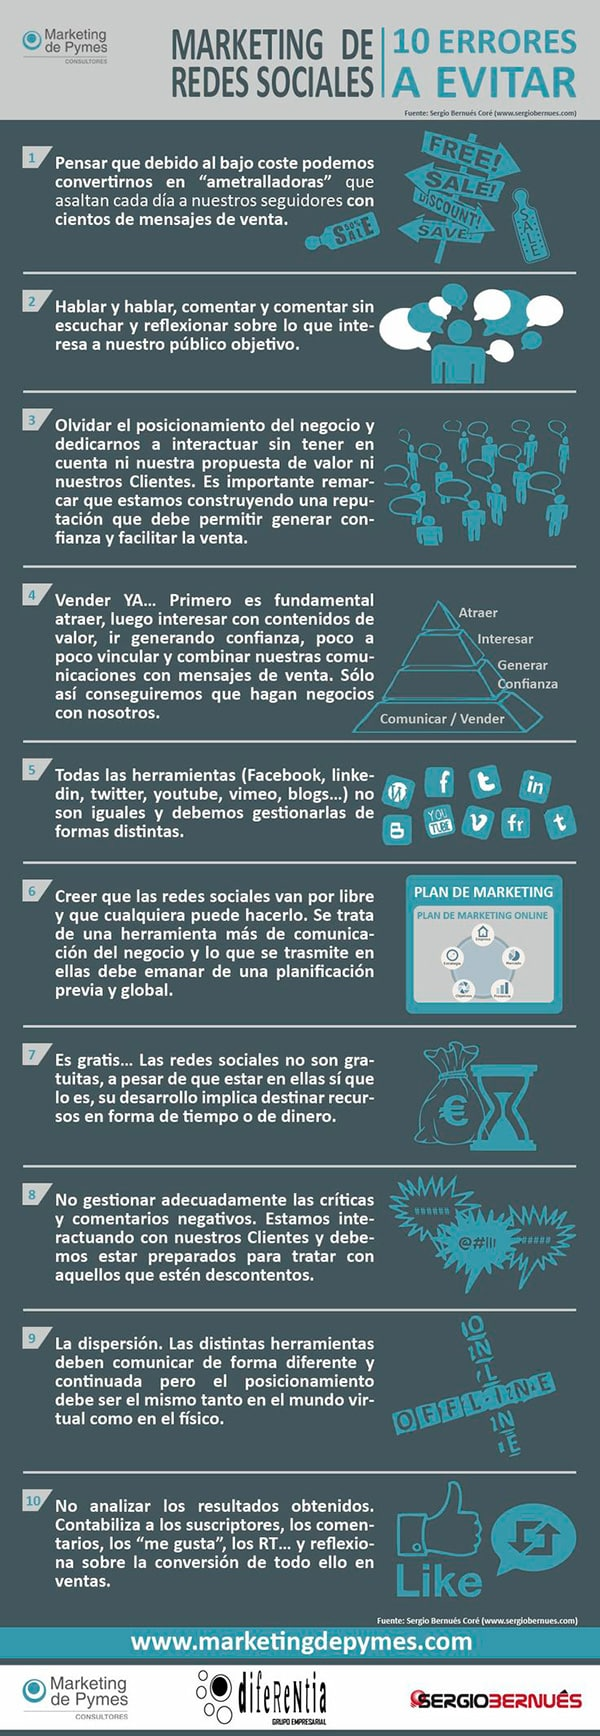 Infografía: Errores en el marketing de redes sociales